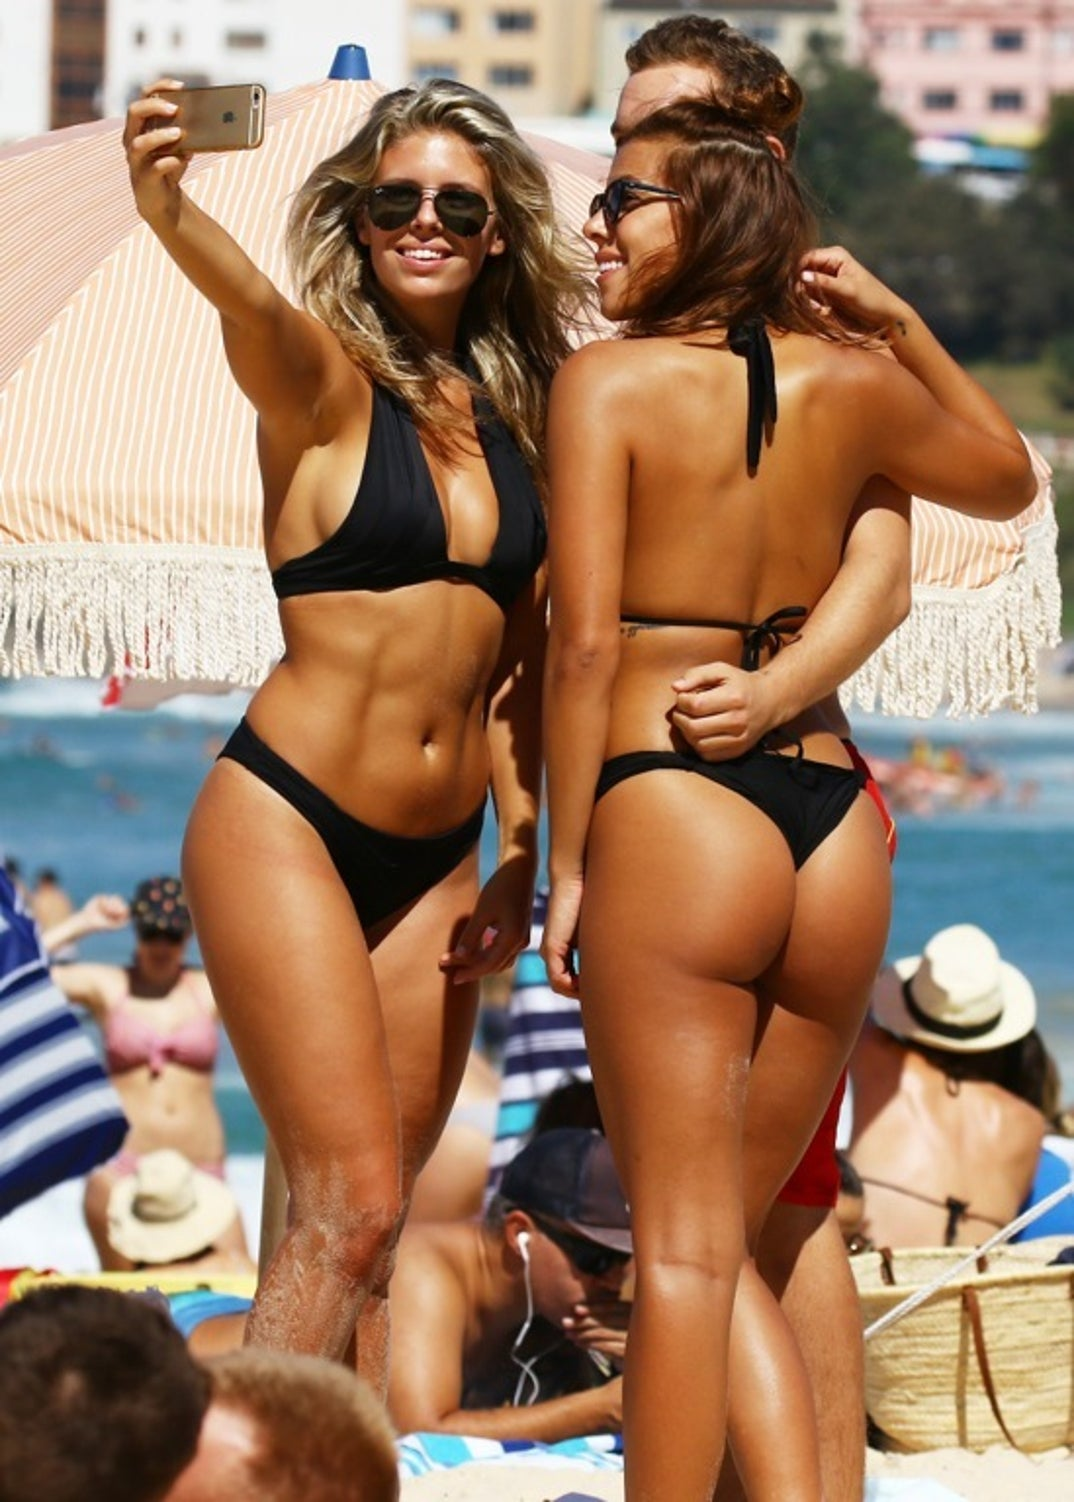 Hot babes in the beach